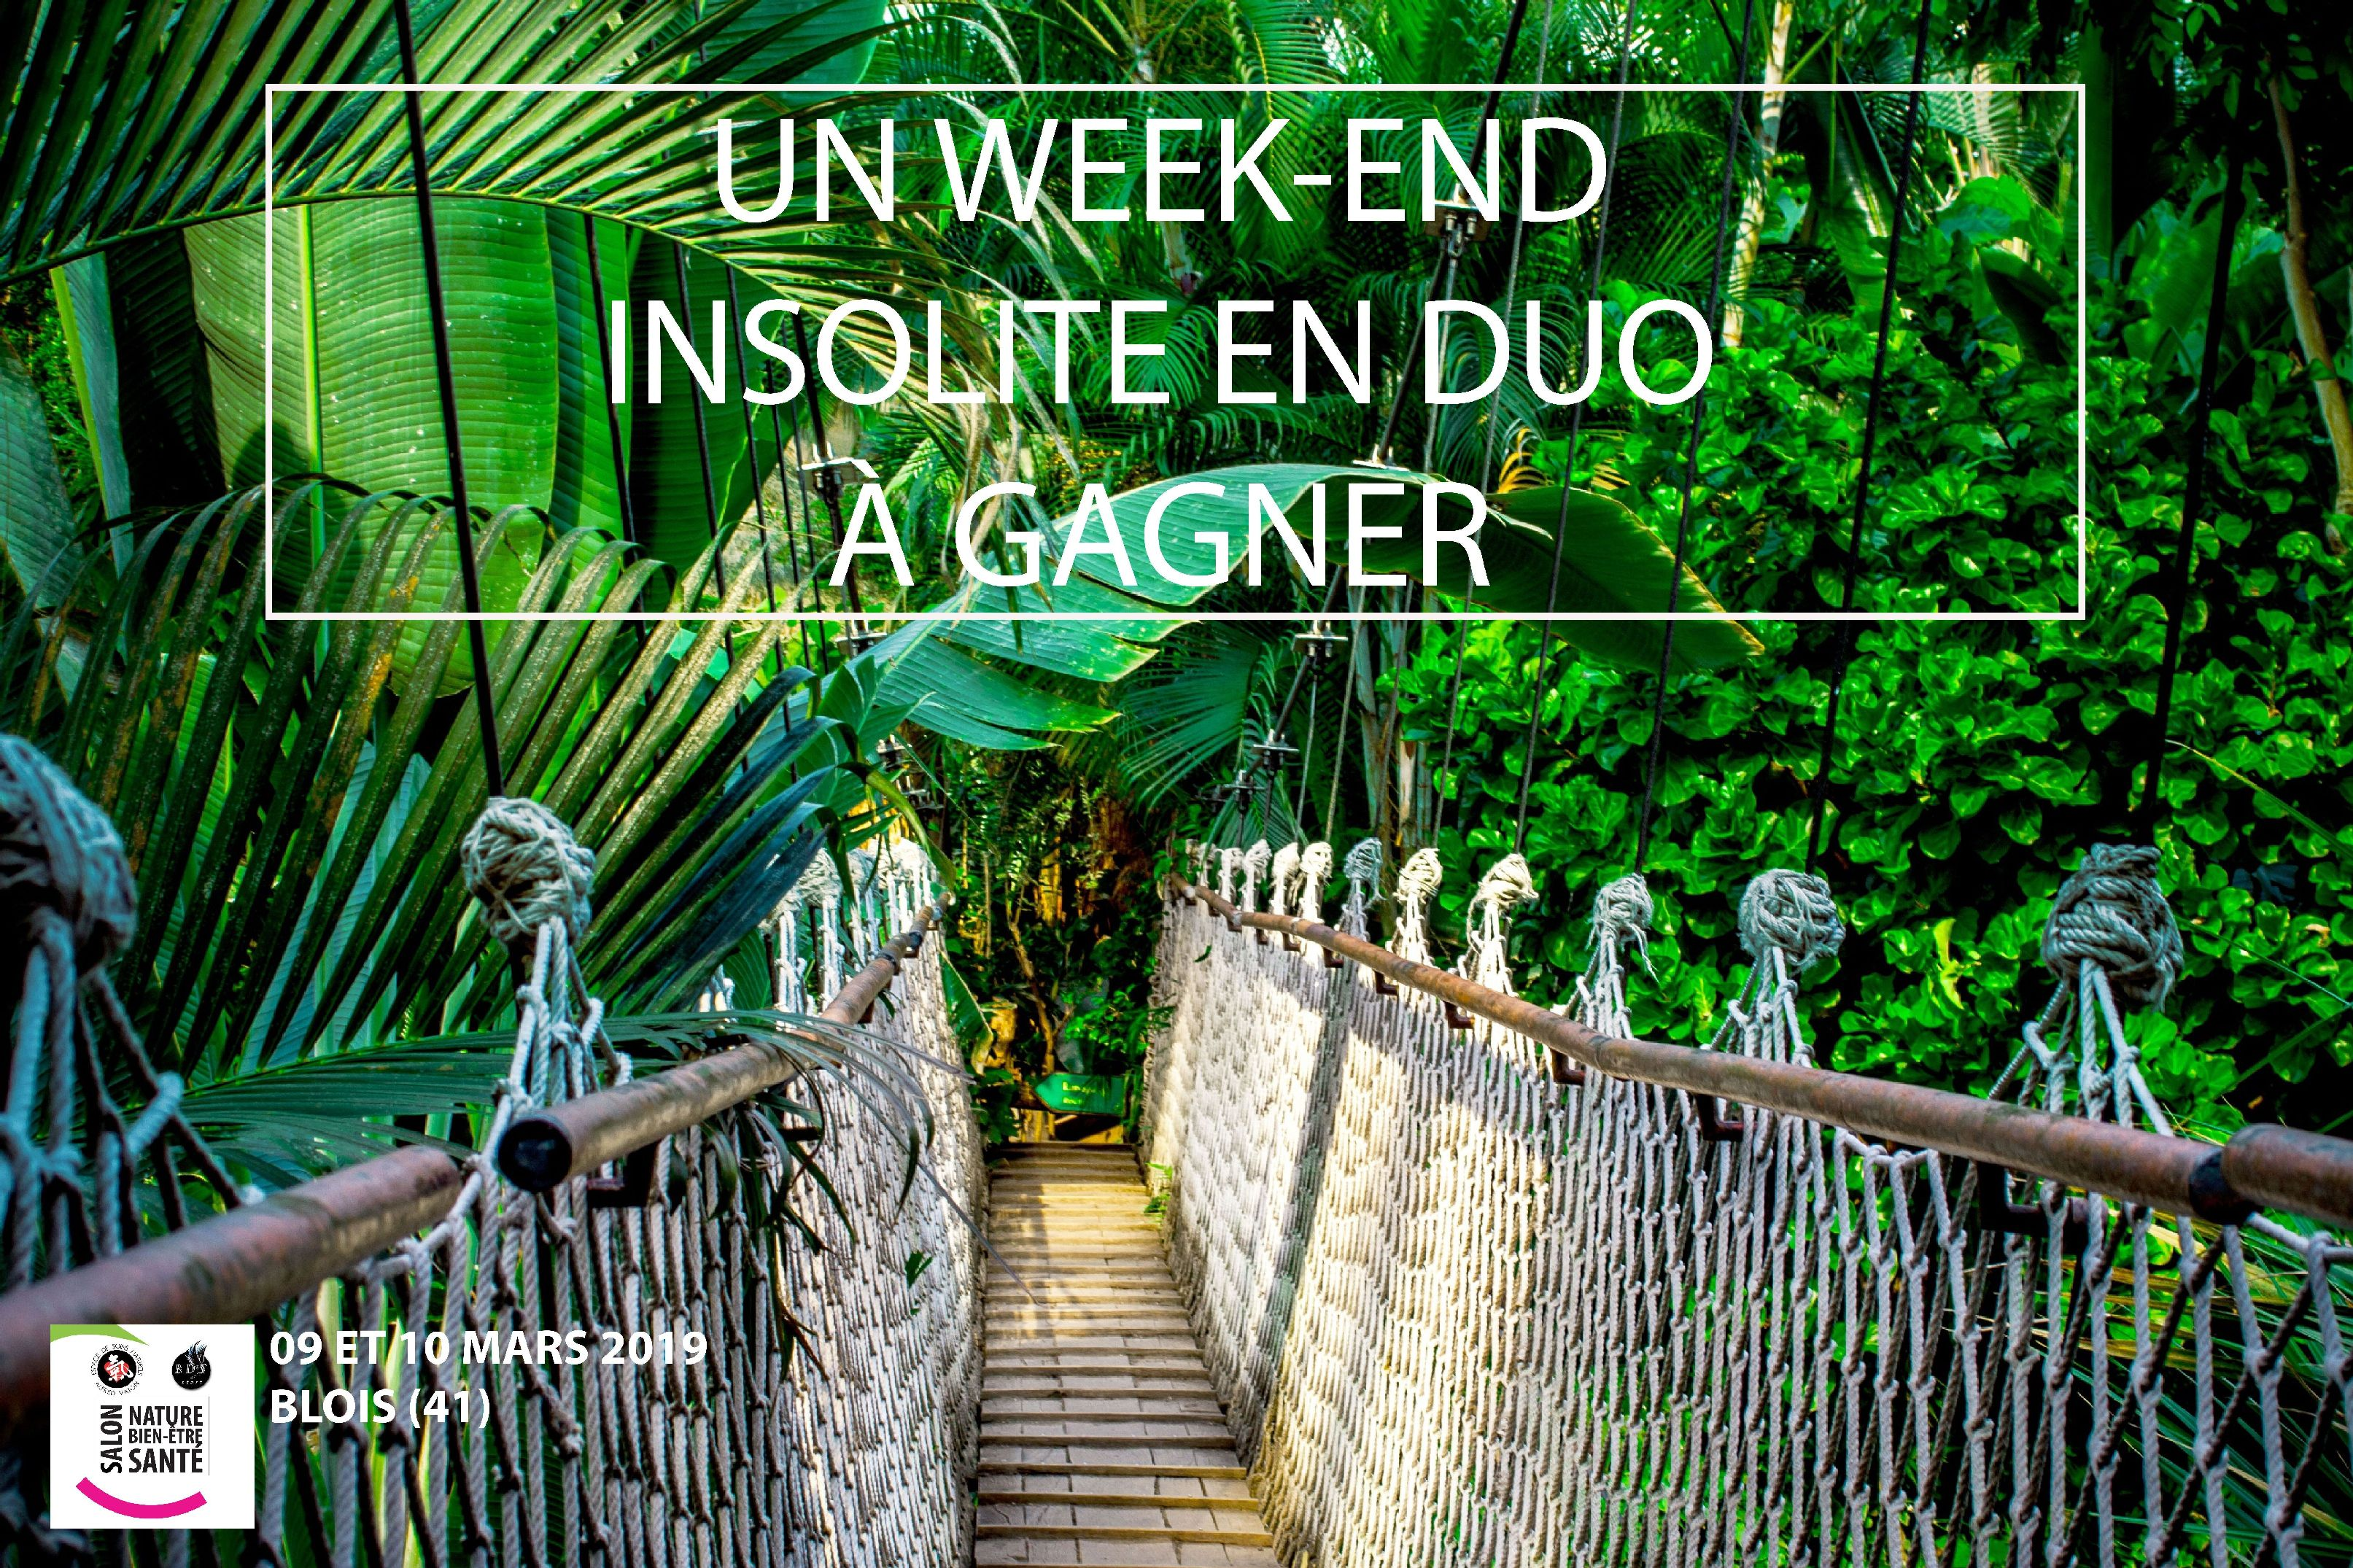 Le week-end arrive à grand pas !!!  gagnez un super 🤩🤸‍♀️🌿WEEK END INSOLITE EN DUO 🌿🤸‍♀️🤩,